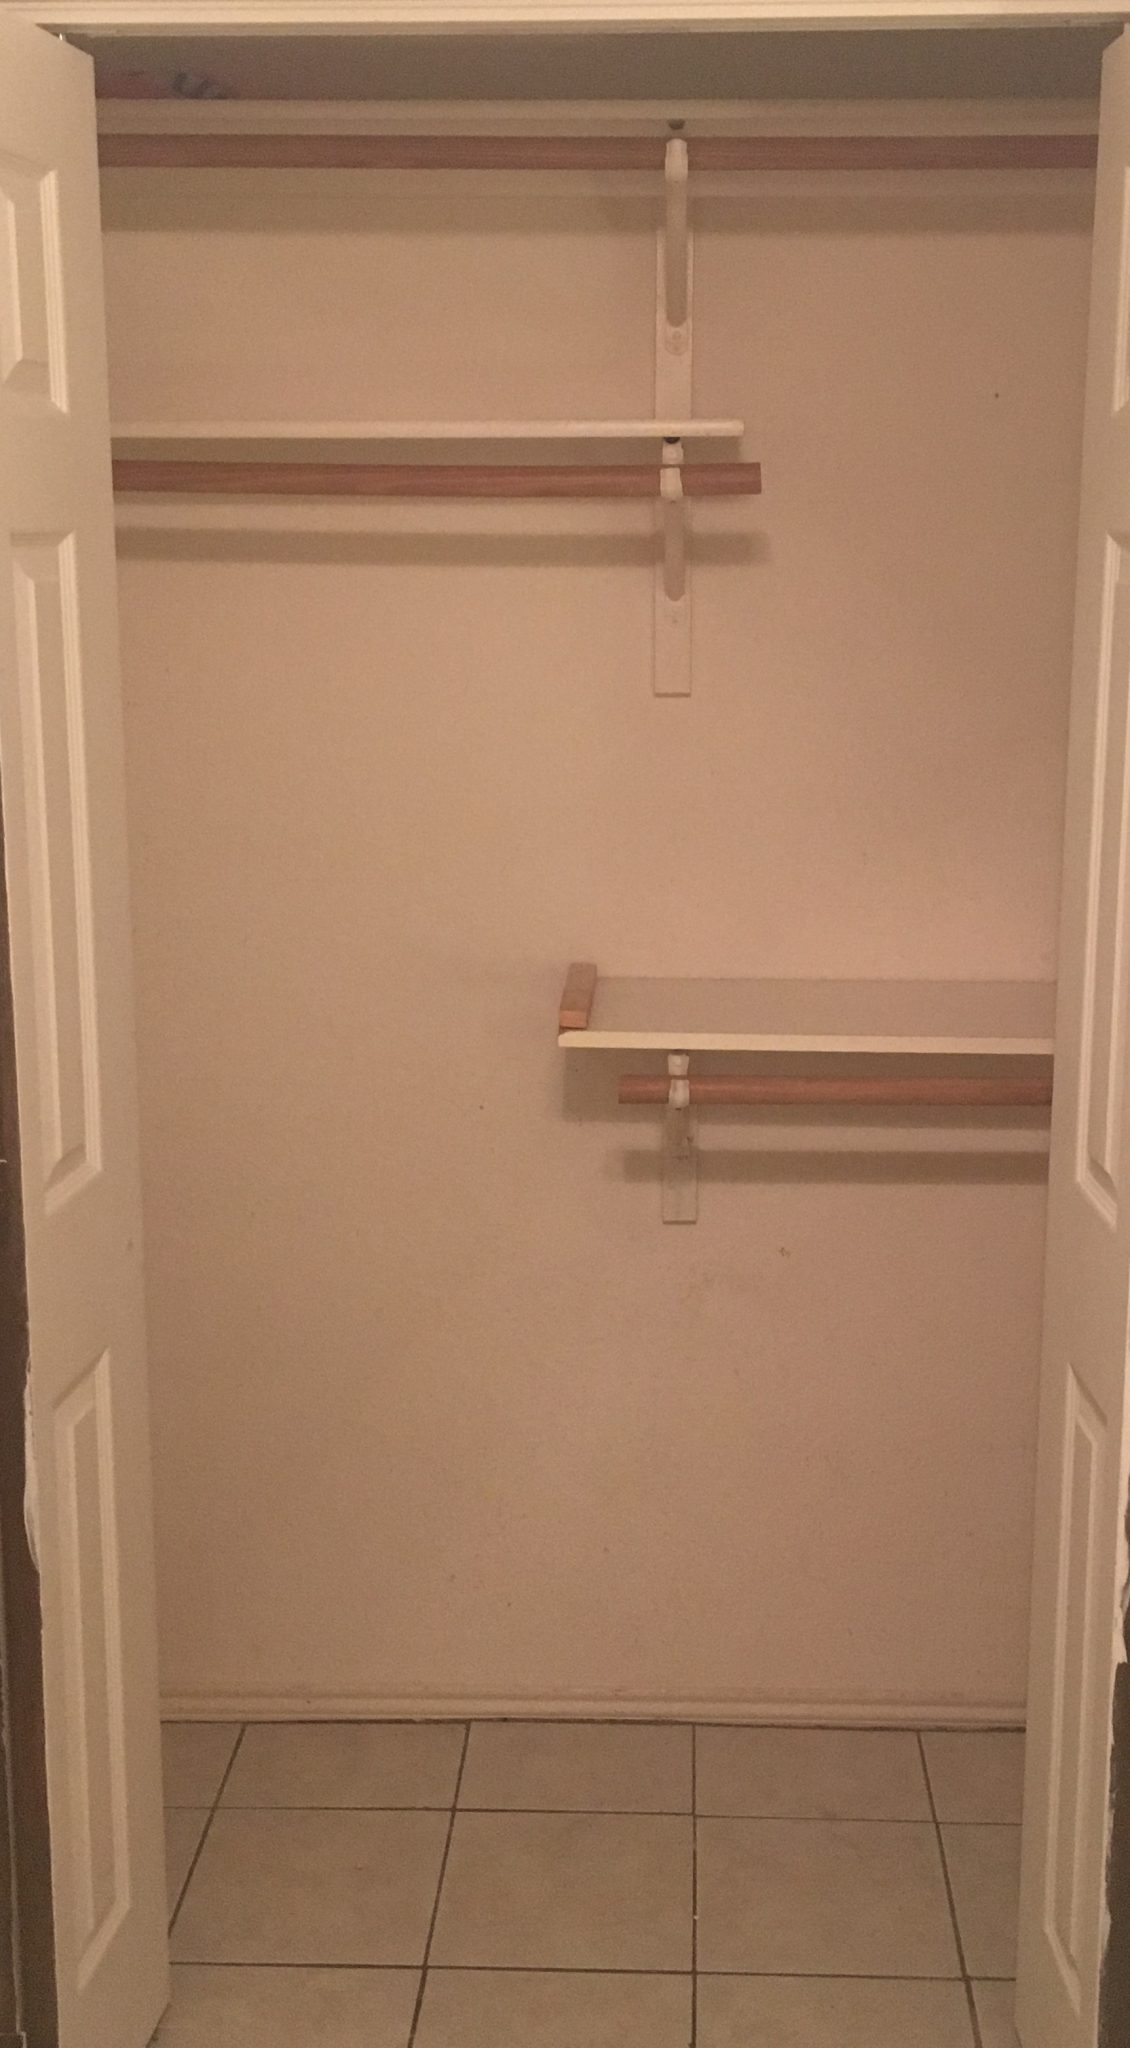 A Jones For Organizing A Simple Reach In Closet Improved